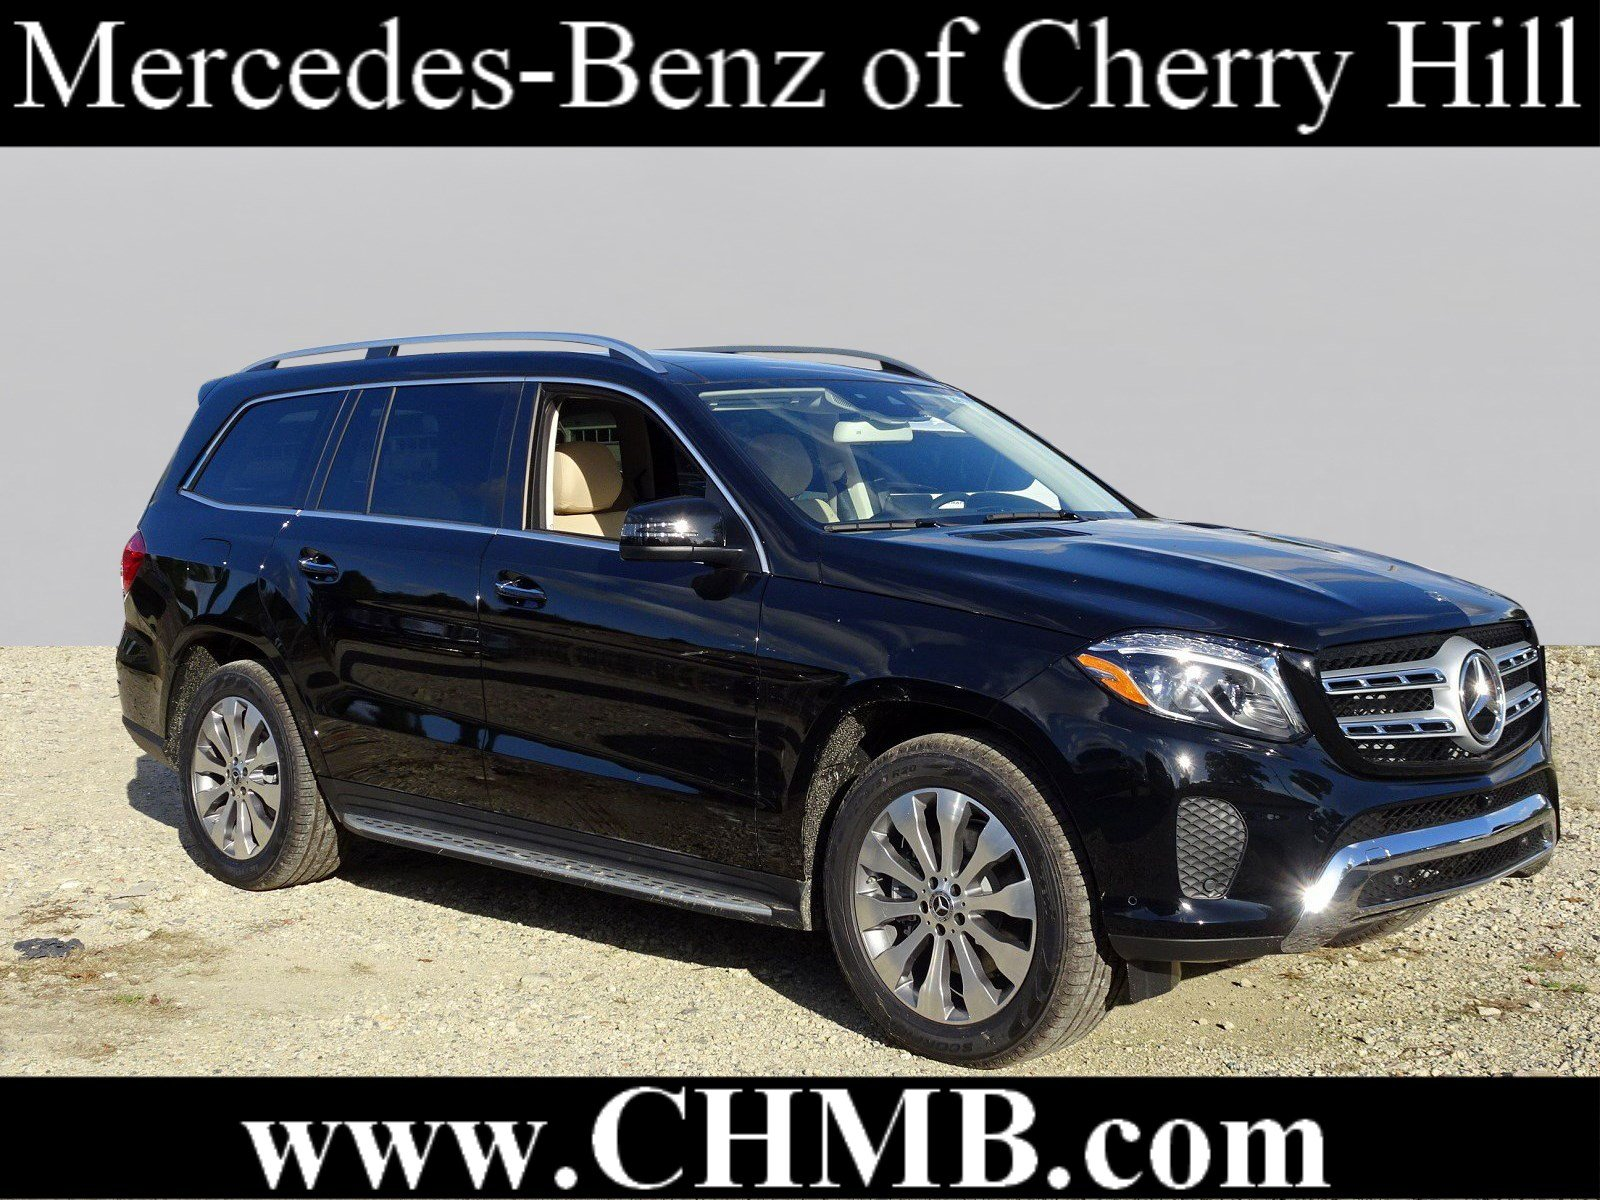 New 2019 Mercedes Benz GLS GLS 450 SUV in Cherry Hill M2386